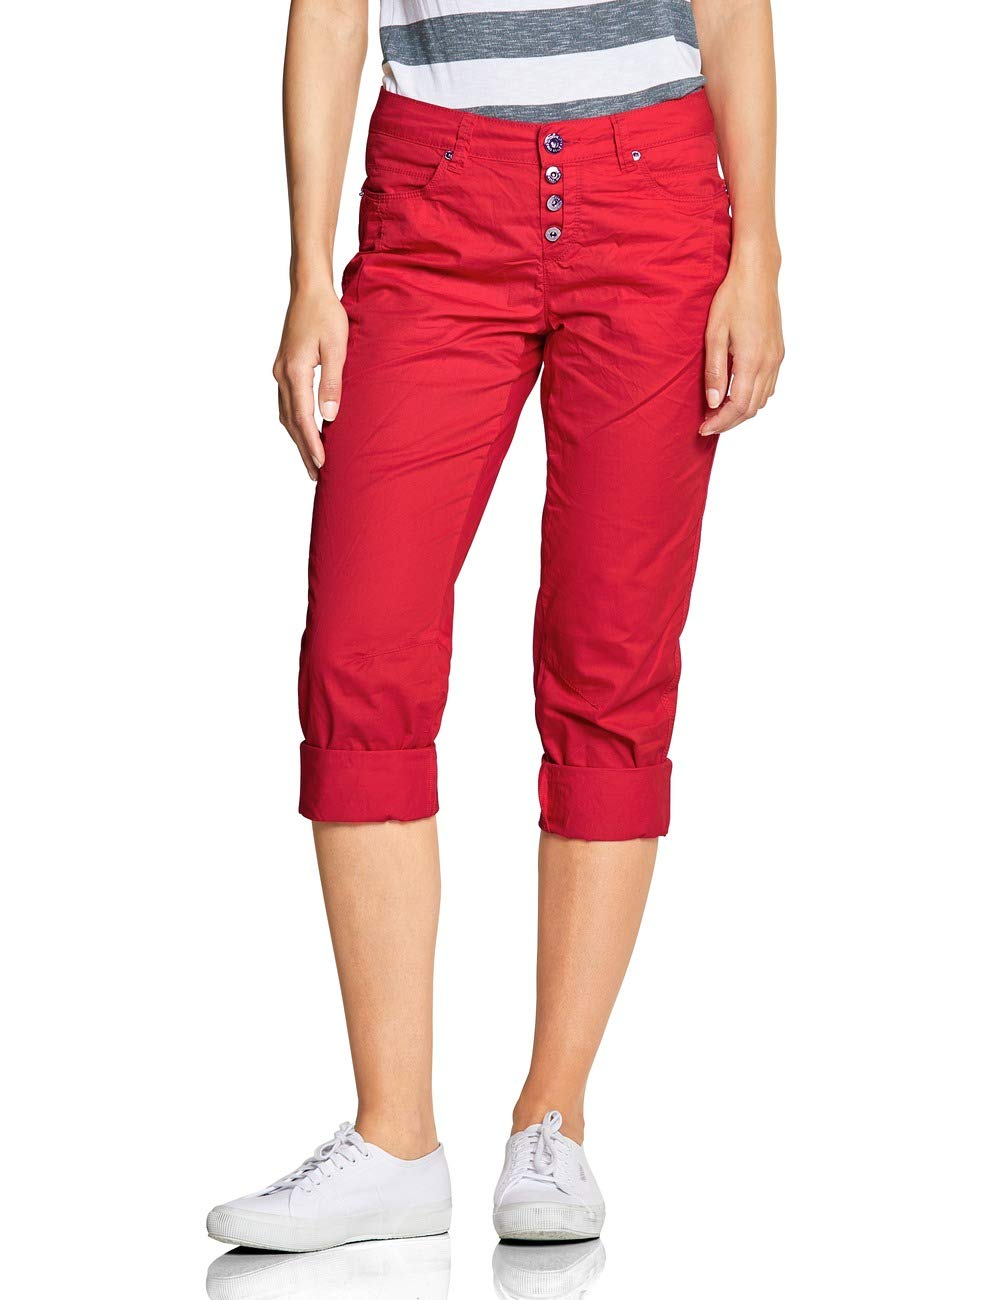 Jane Street One 372269 l26taille PantalonRougevivid Fabricant40Femme Red 1173740 8mvNn0wO